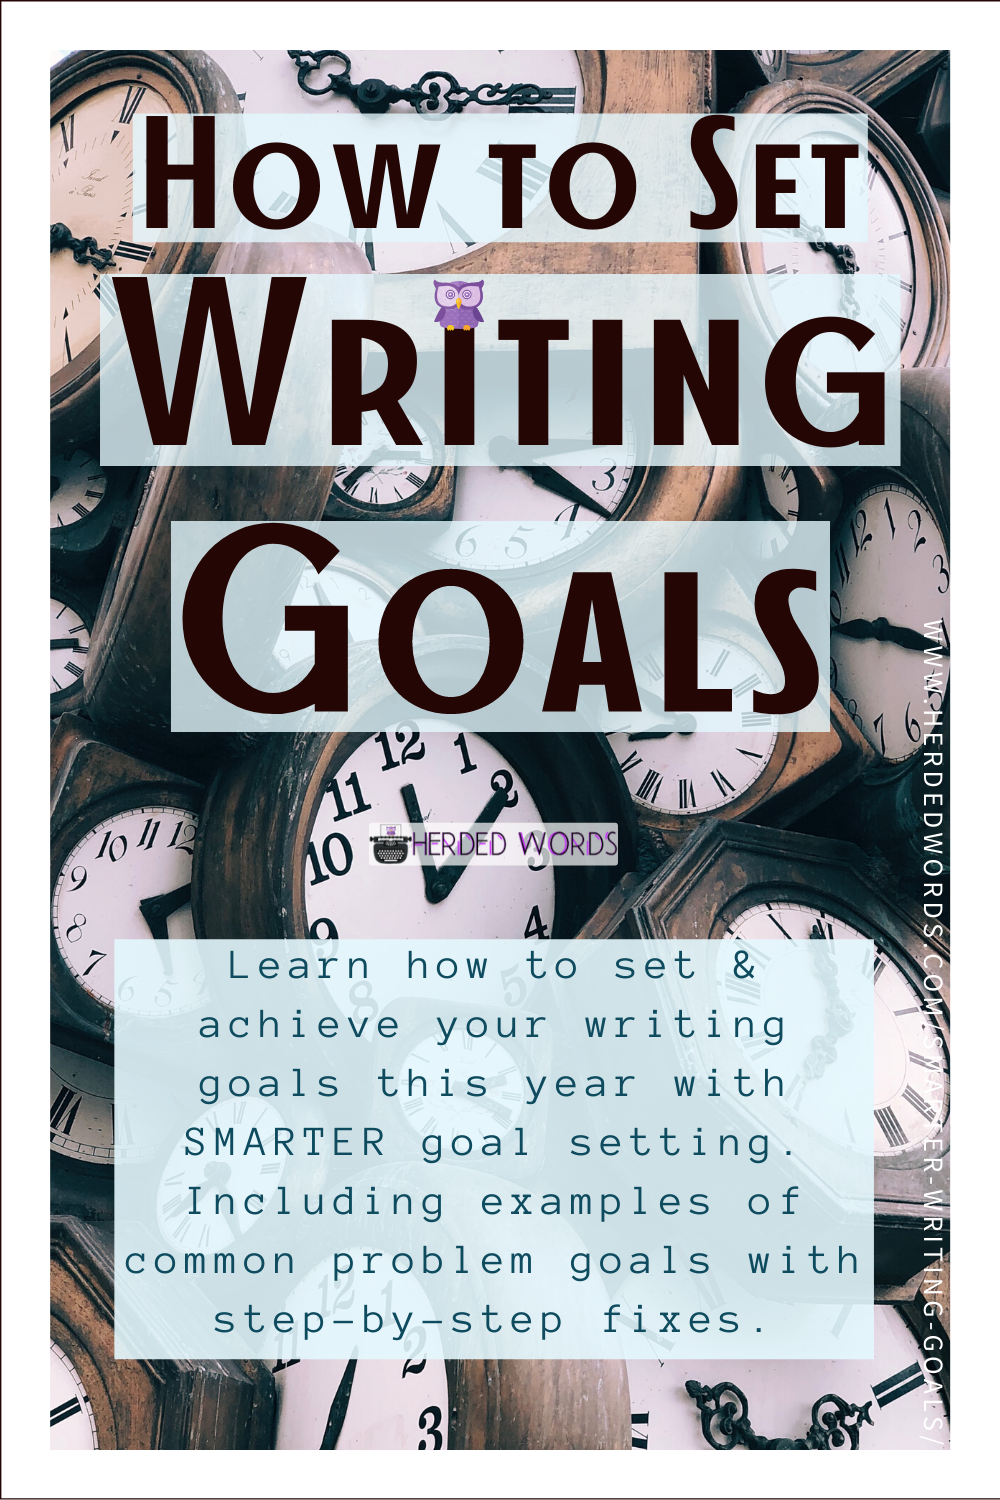 7 Steps for Setting Writing Goals that are SMARTER